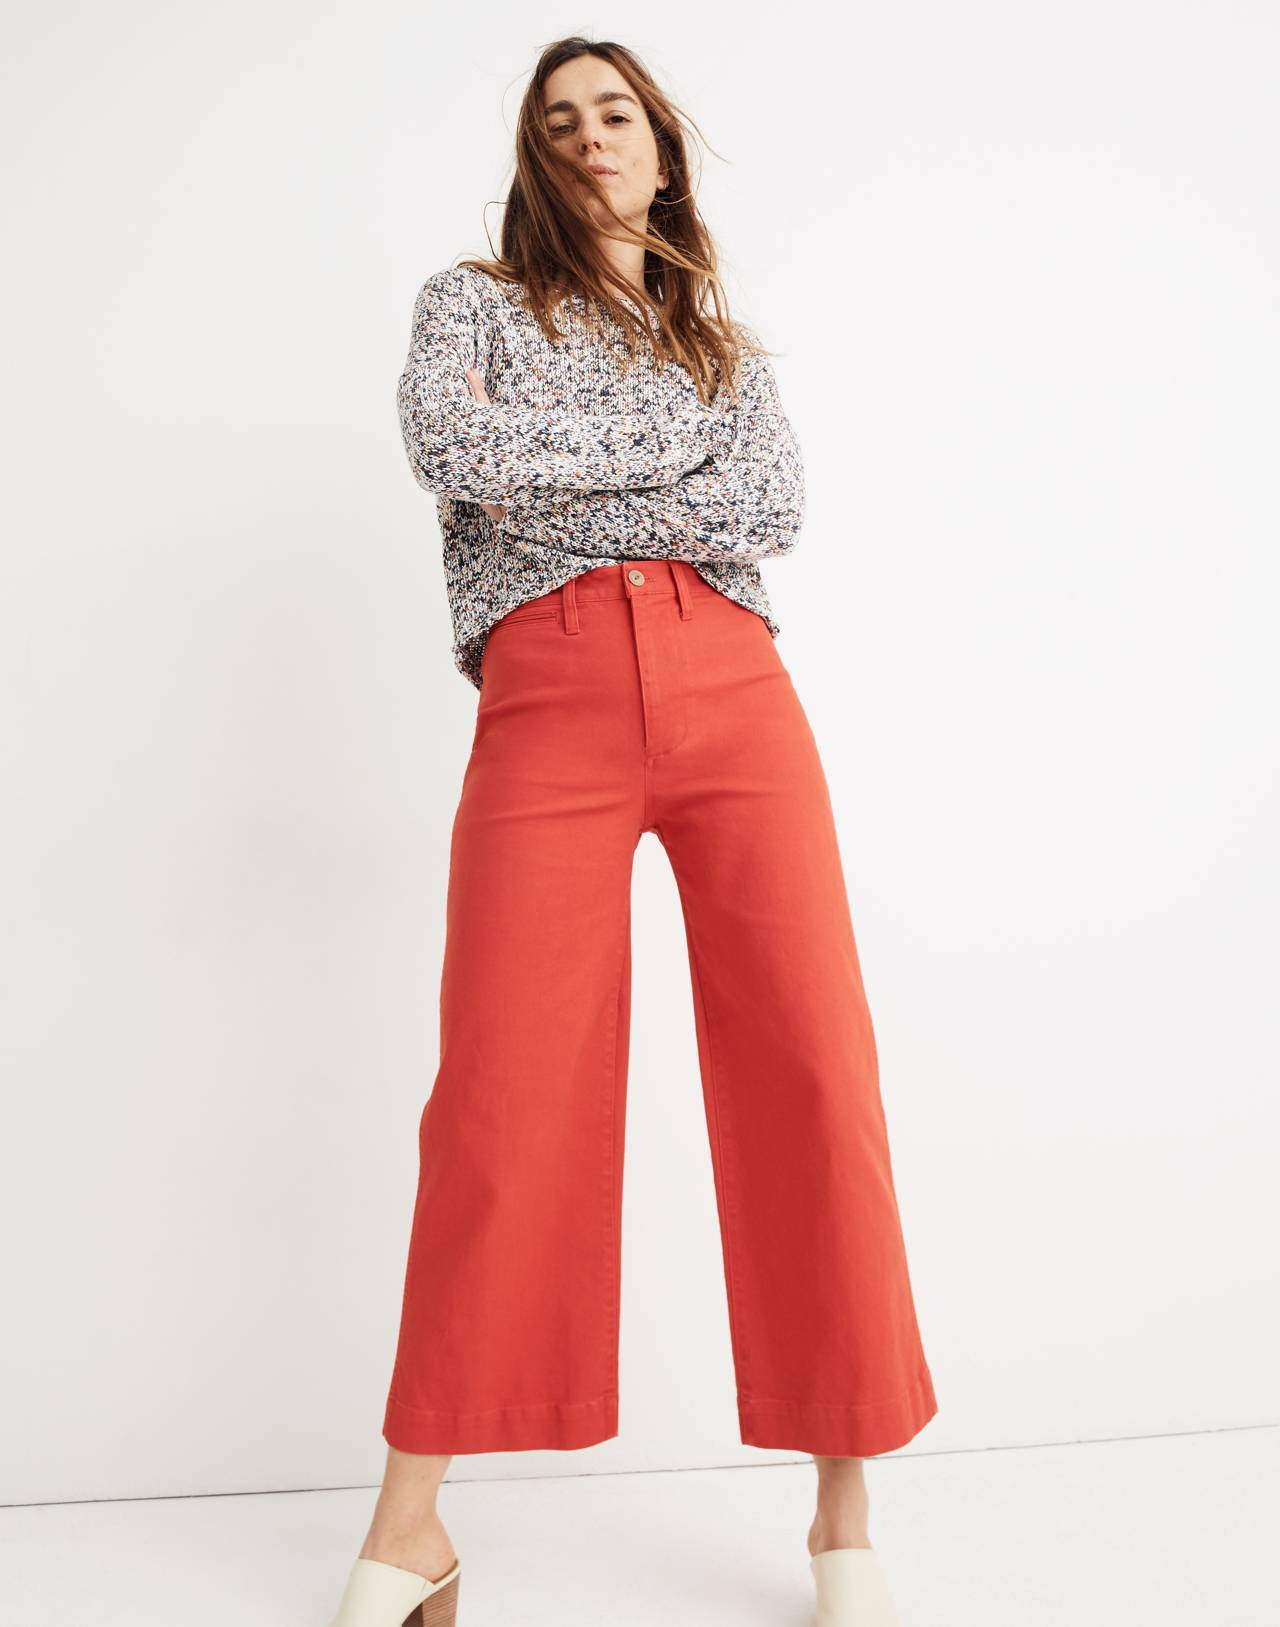 Emmett Wide-Leg Crop Pants in americana red image 1